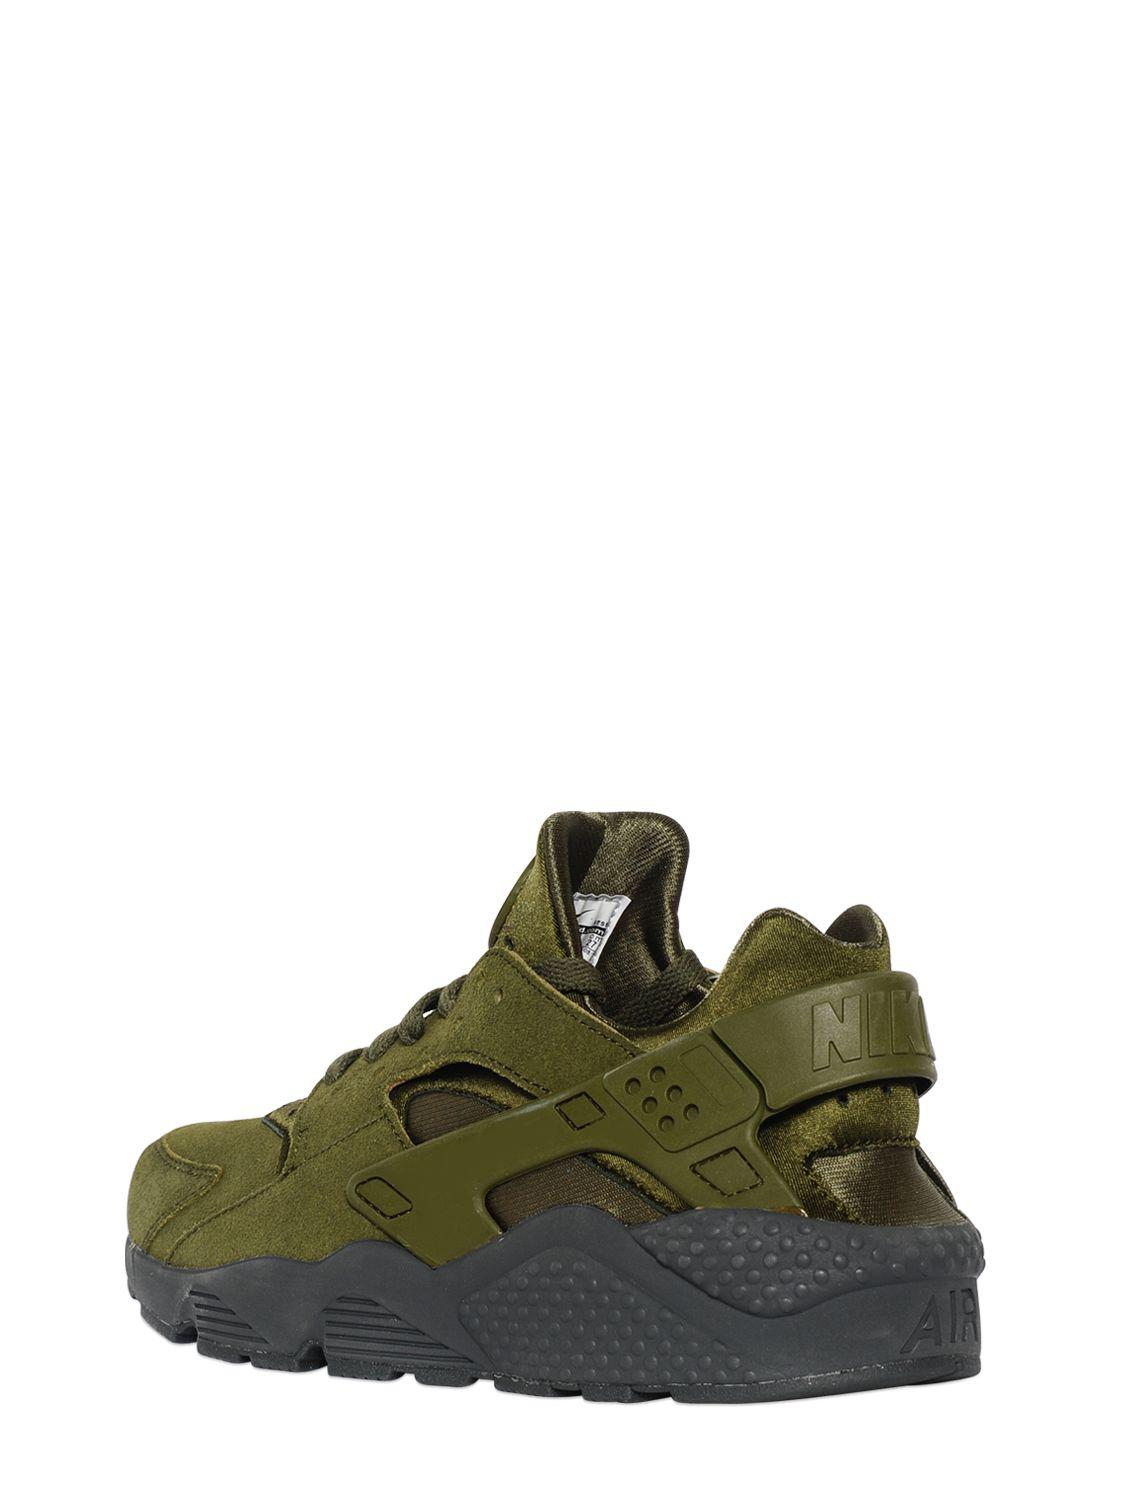 7a3db62c5ac1 Nike Air Huarache Faux Suede Sneakers in Green for Men - Lyst